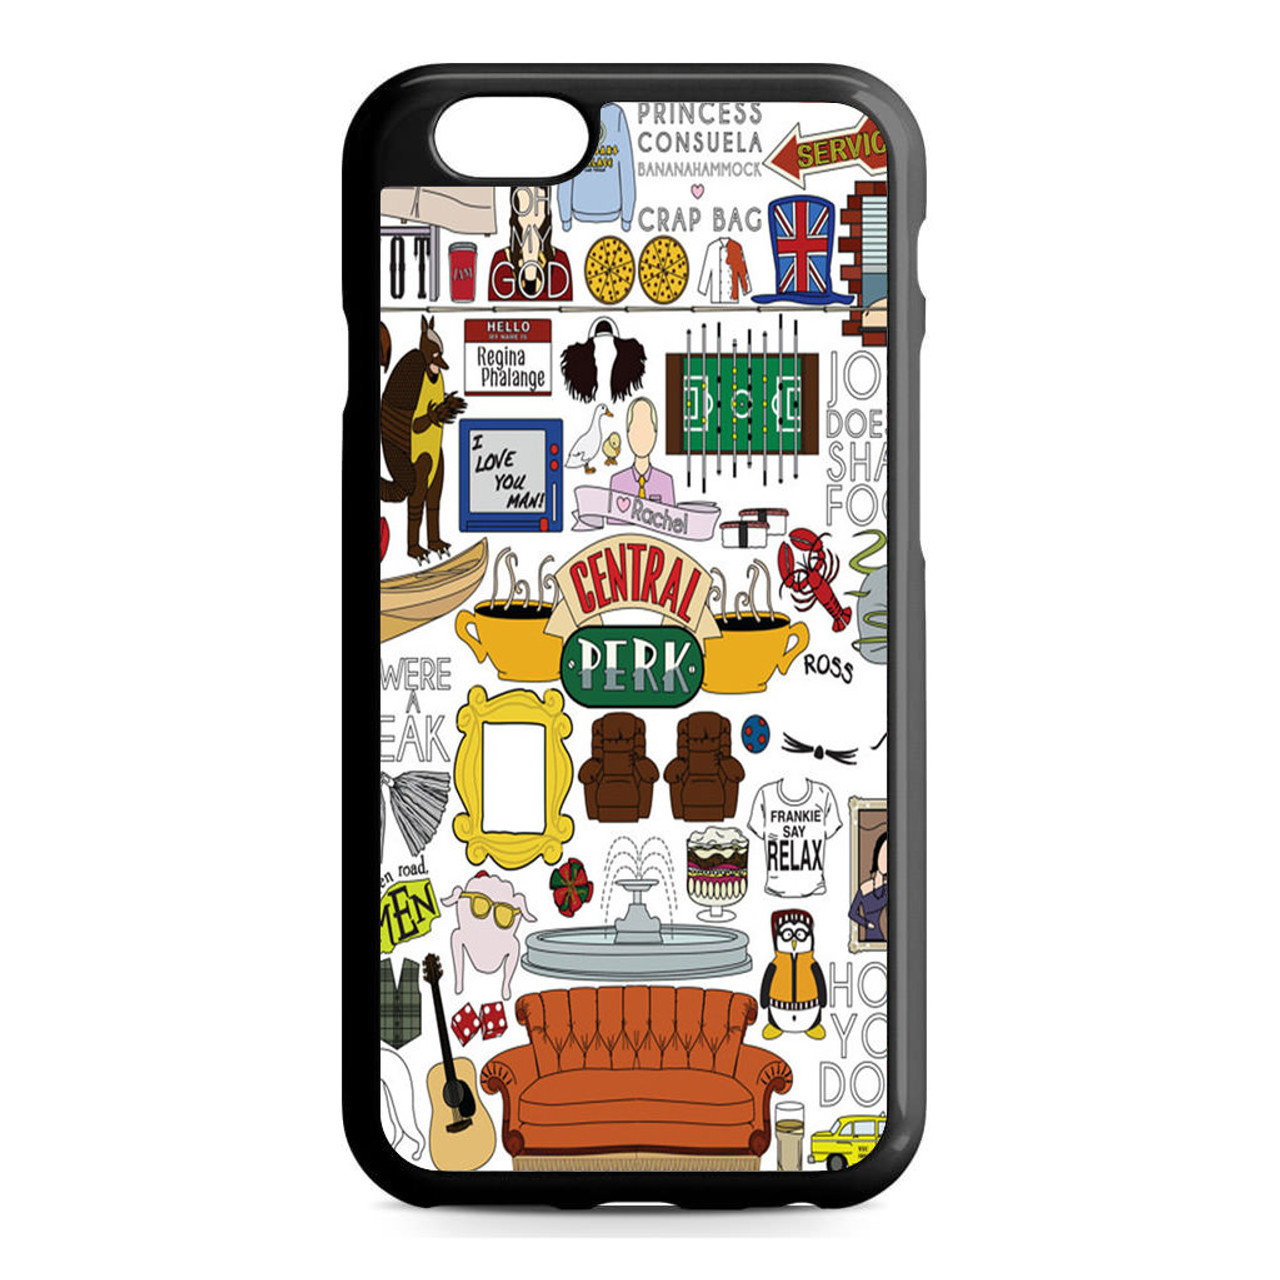 reputable site 01754 8f797 Friends Tv Show Central Perk iPhone 6/6S Case